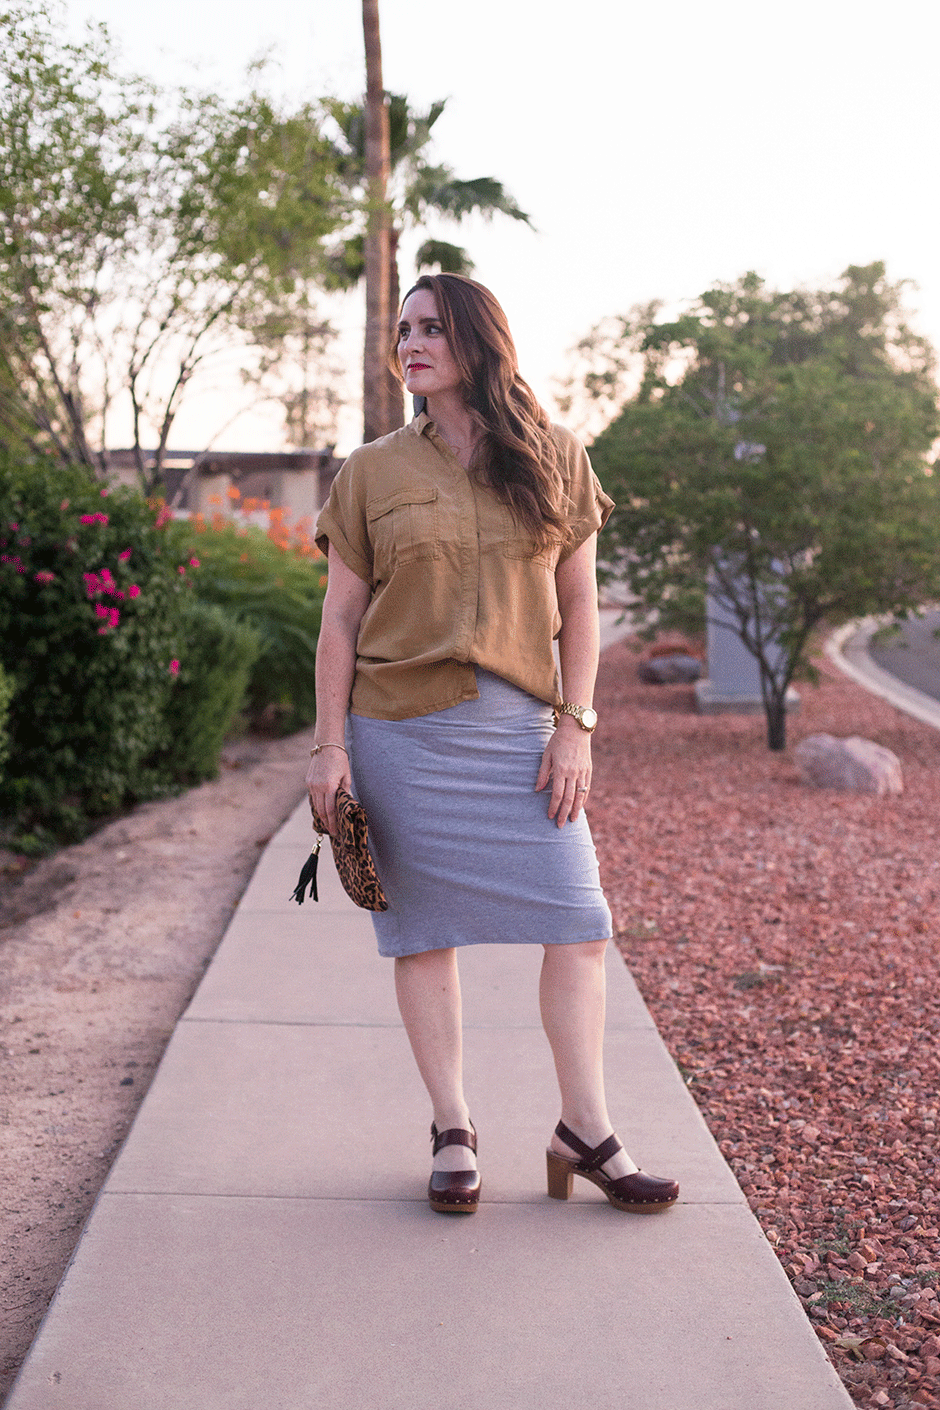 Knit pencil skirts are one of the comfiest, most easy-to-wear staples in my closet and the best part is that they're a breeze to sew! If you're looking for an easy sew skirt project, this is it, even if you don't have a lot of experience sewing with knits! Read on for details about how I created this knit pencil skirt.